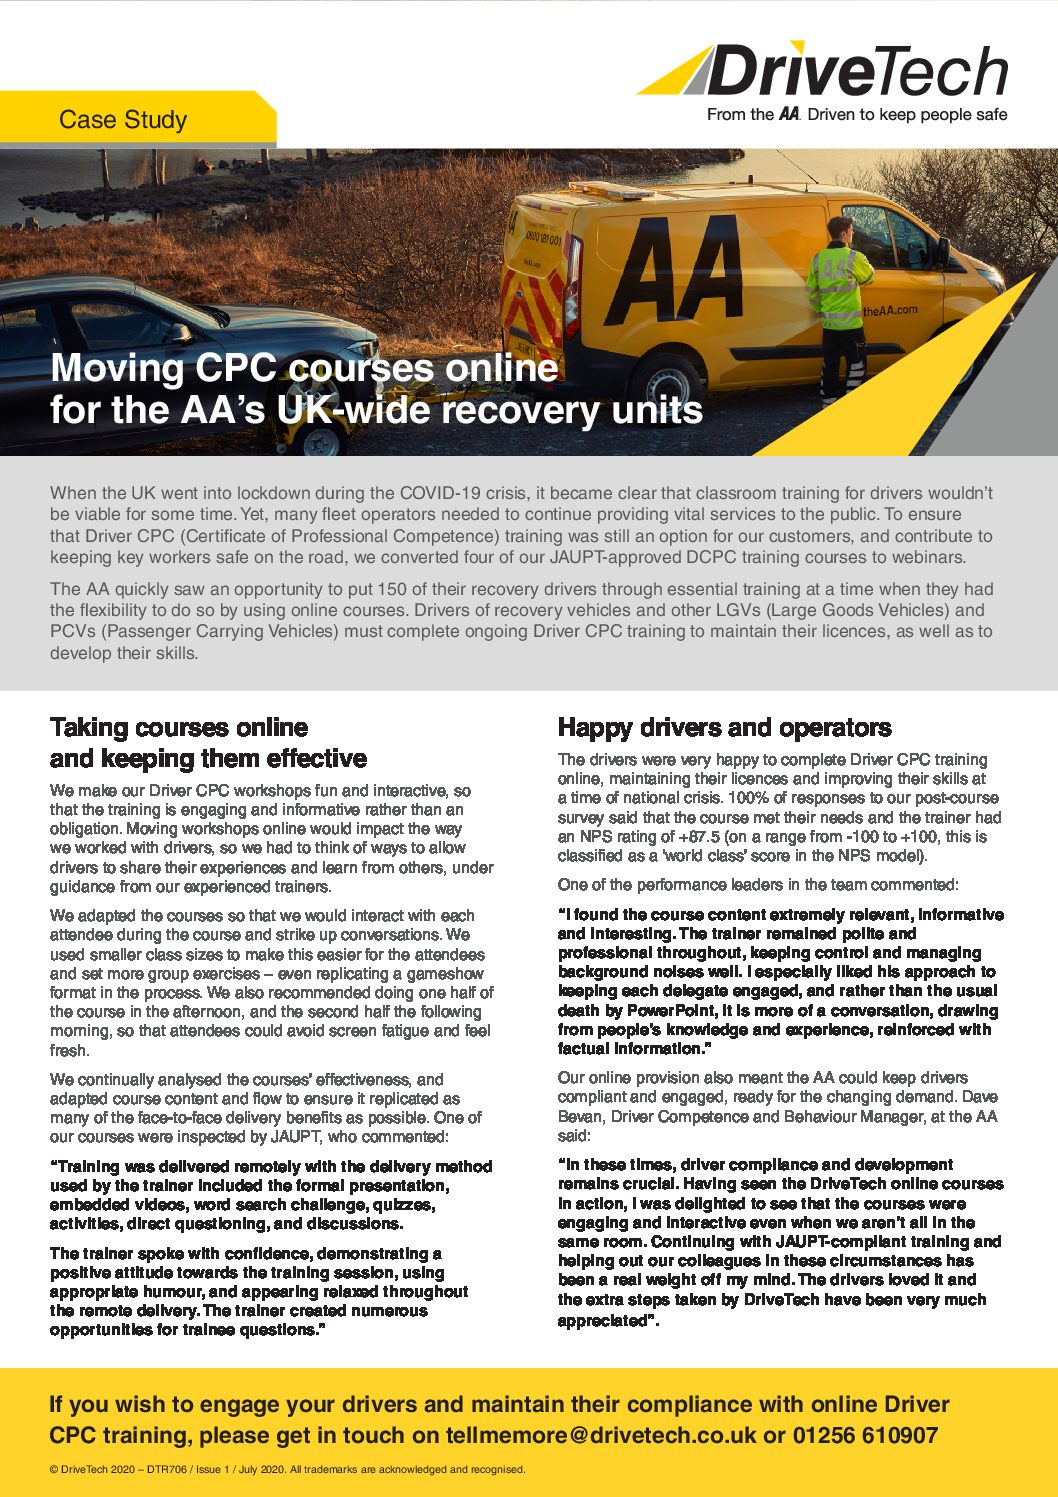 The AA Case Study – Online CPC Courses